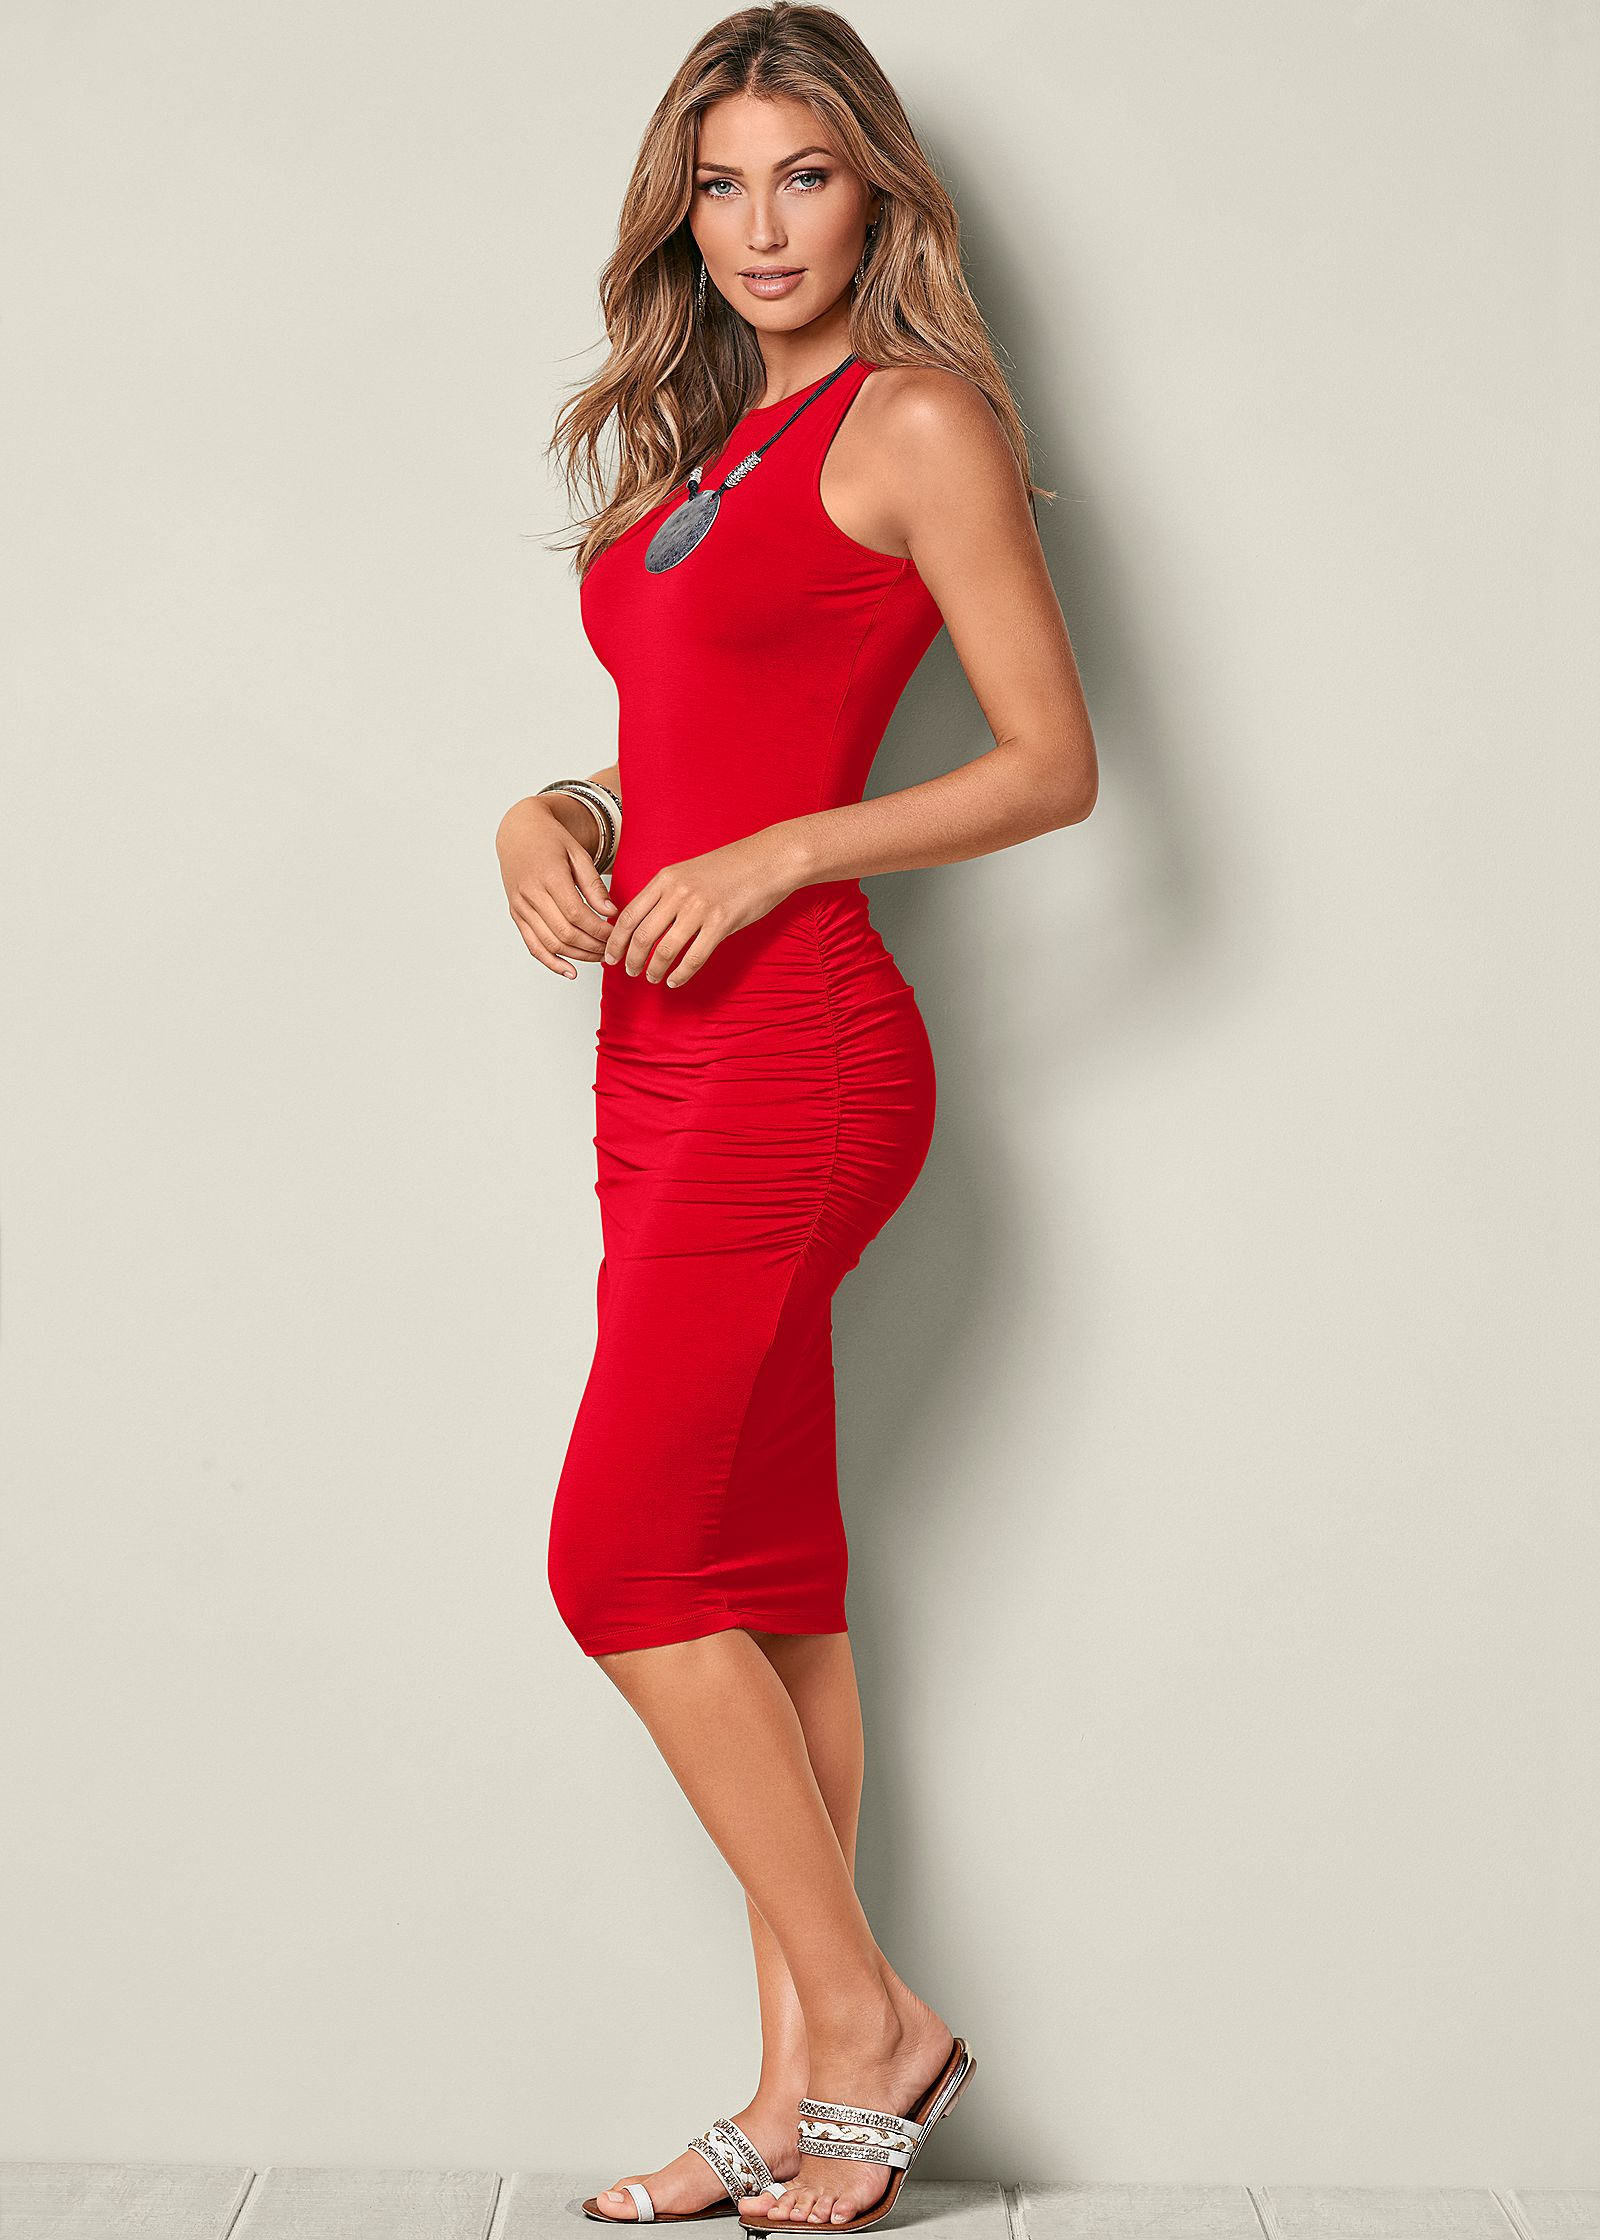 Cocktail dress with boots images